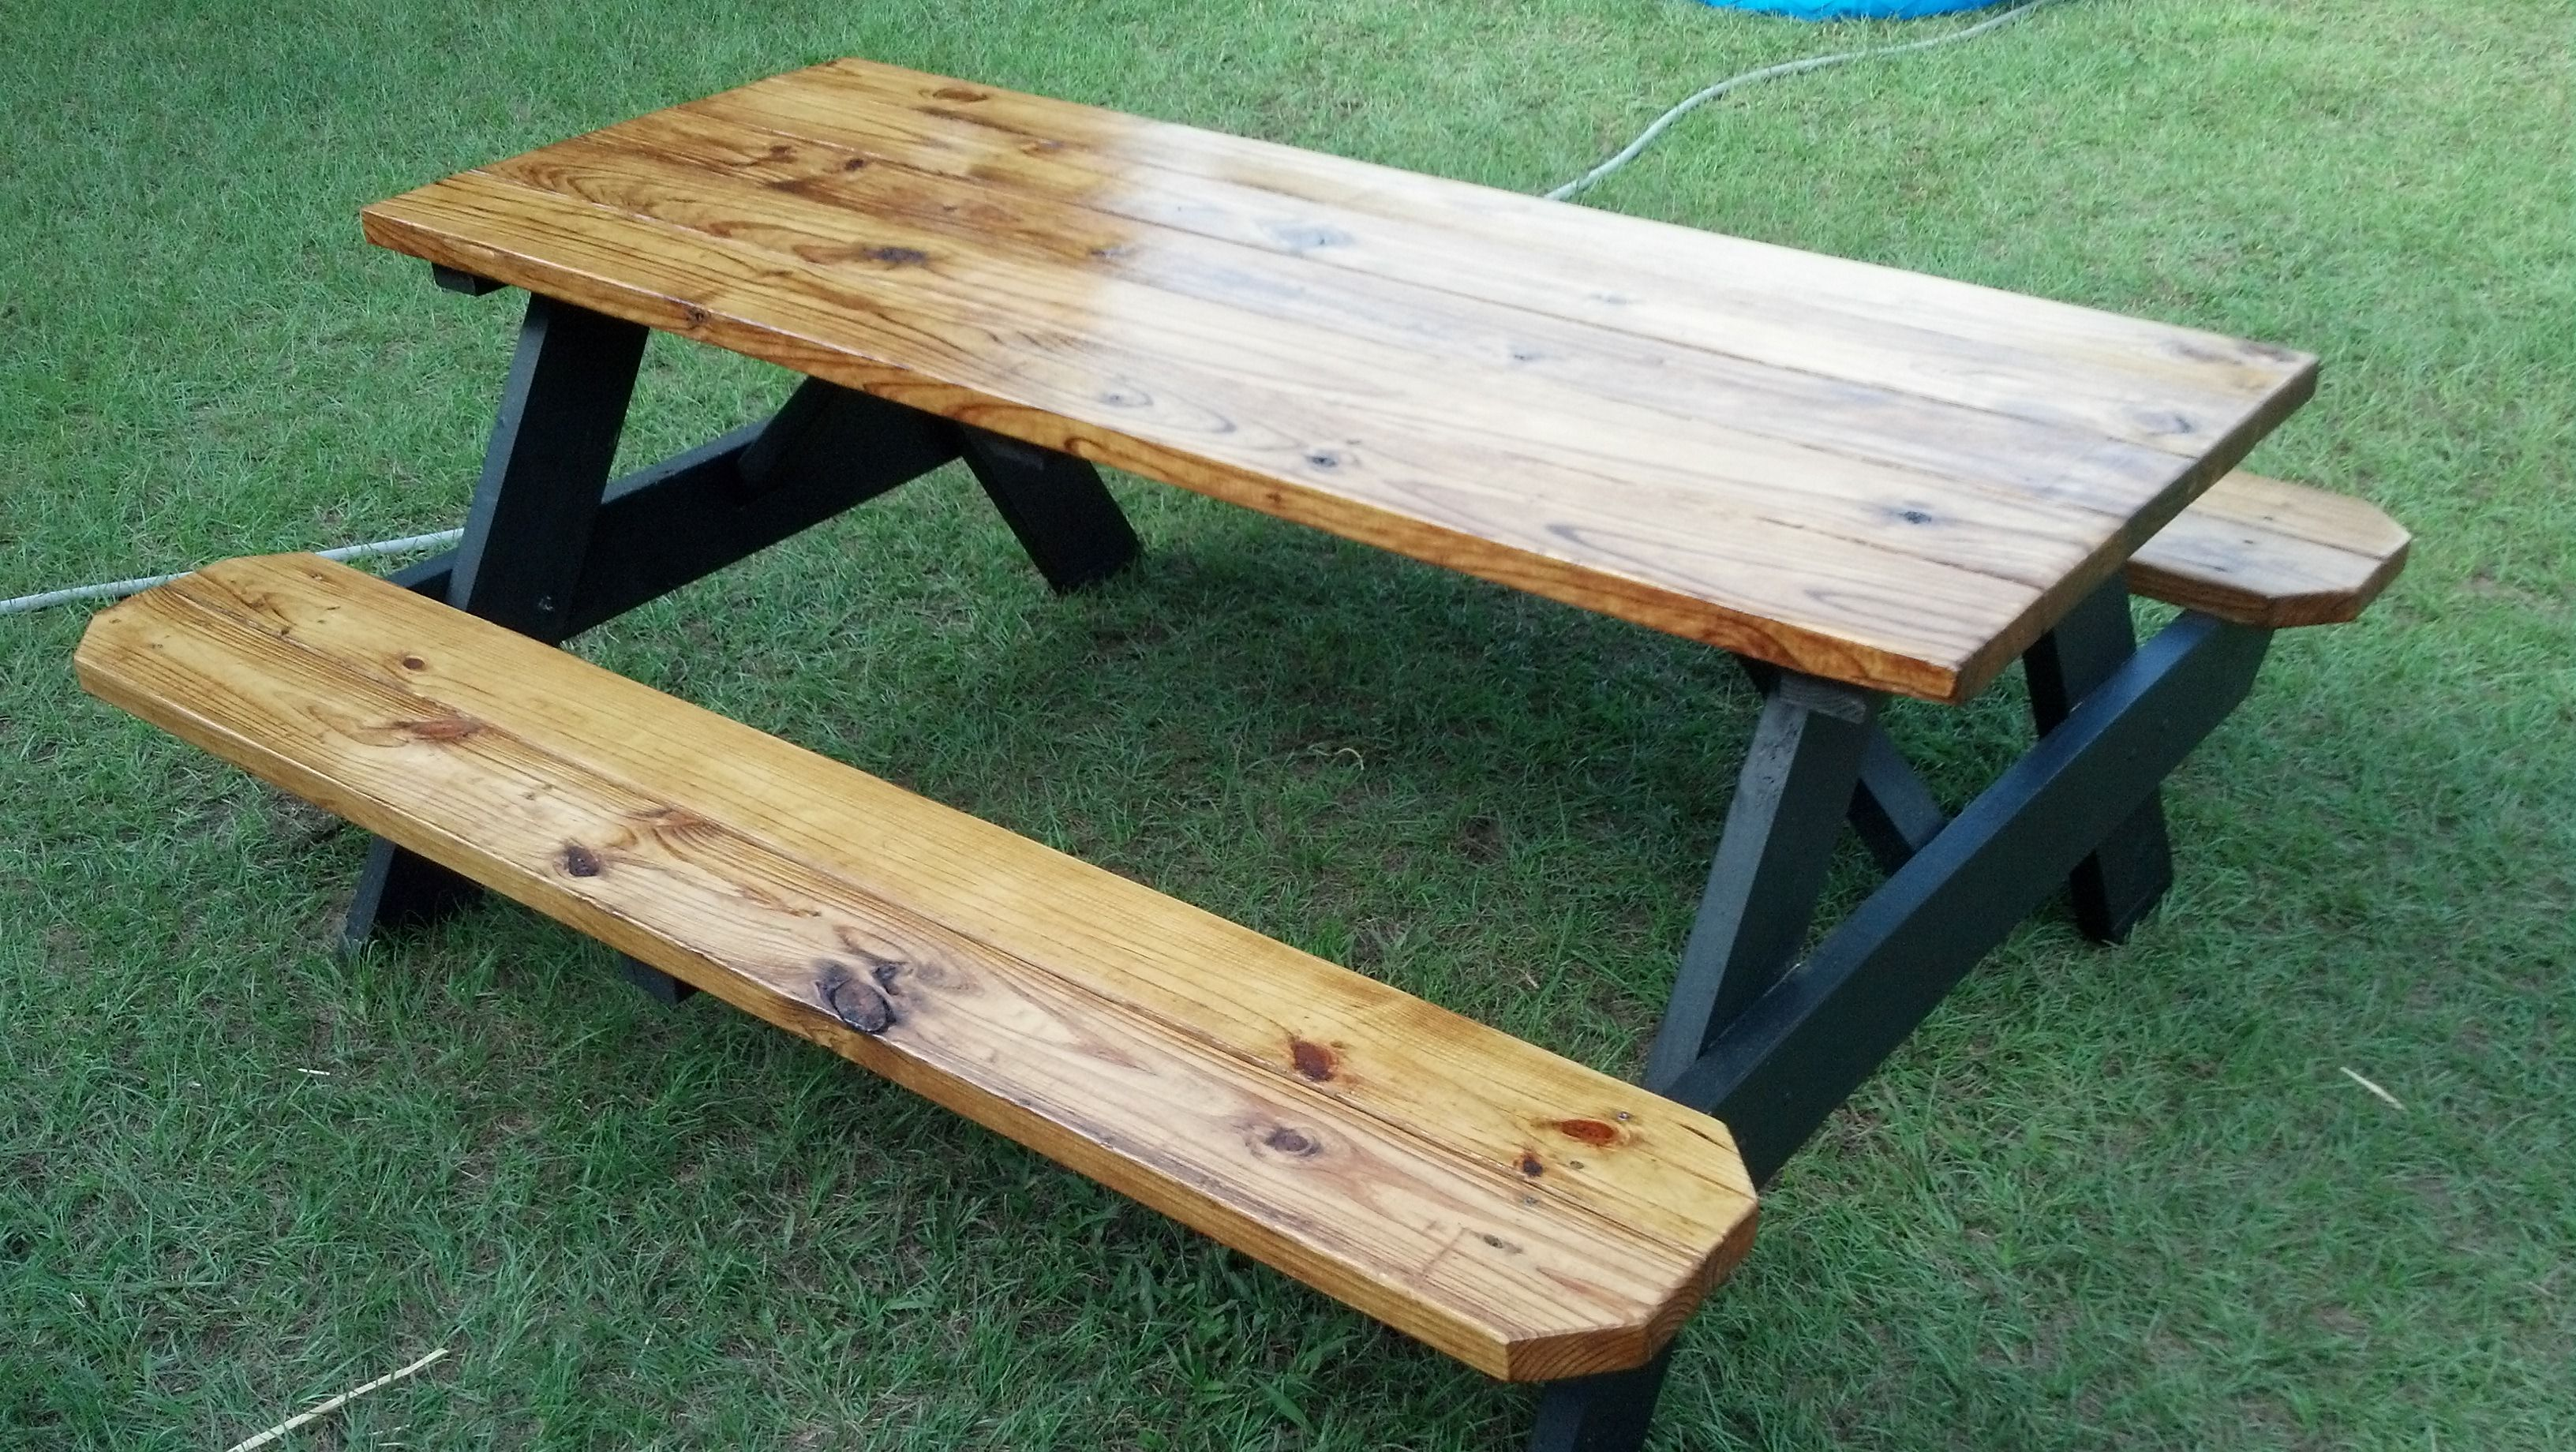 How To Stain A Picnic Table Best Of Pinterest Pinterest Picnic - How to stain a picnic table